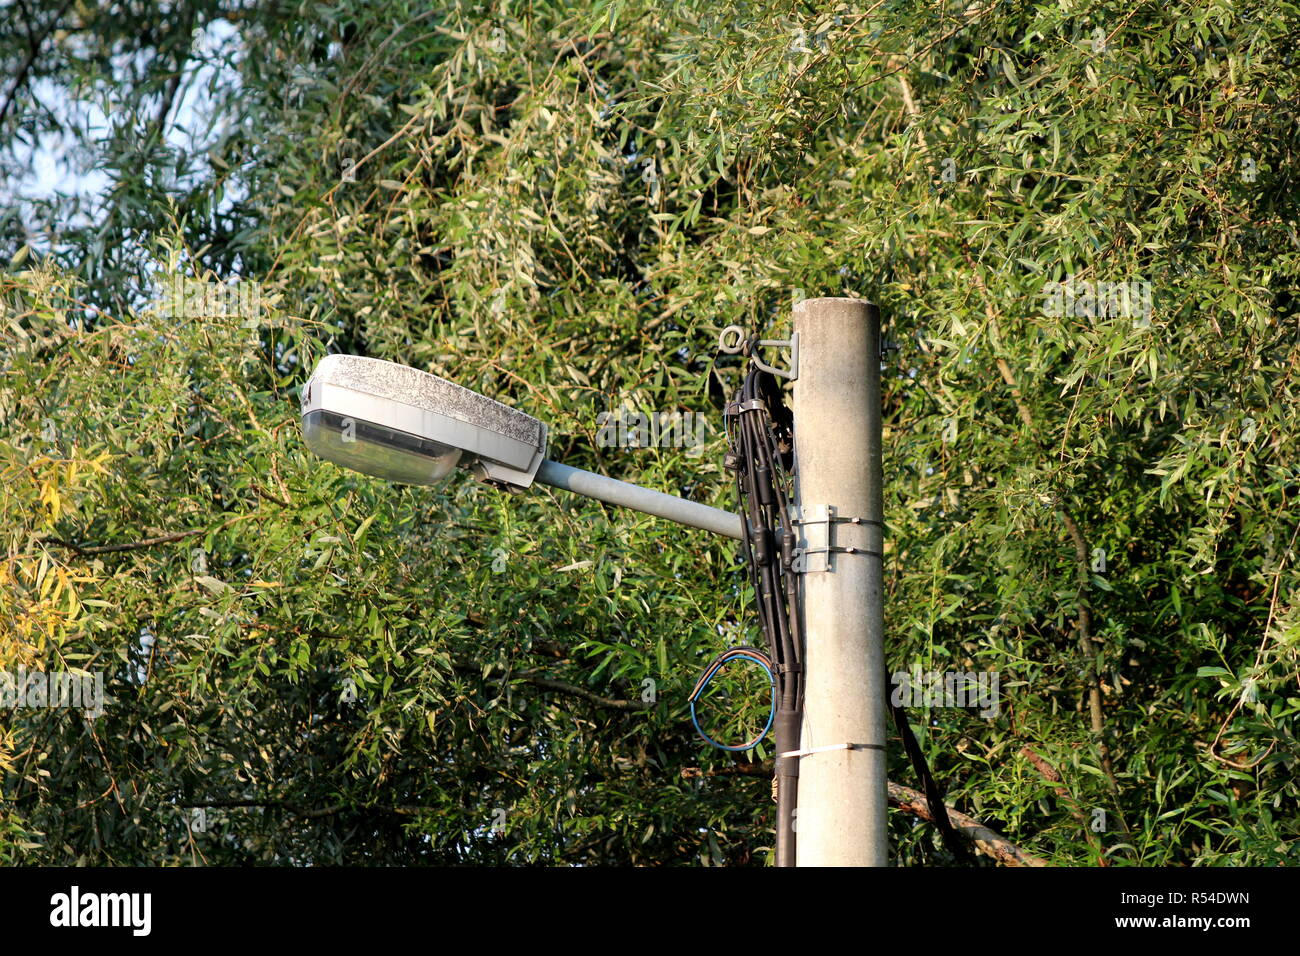 Large old street lamp mounted on concrete utility pole with connected multiple black electrical wires and dense trees and leaves in background - Stock Image